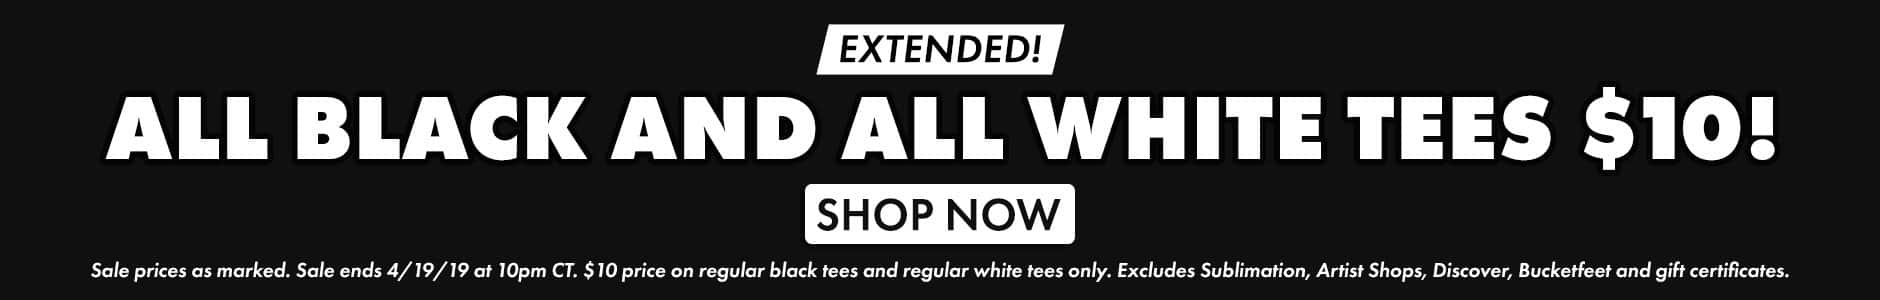 Shop the Black and White Sale